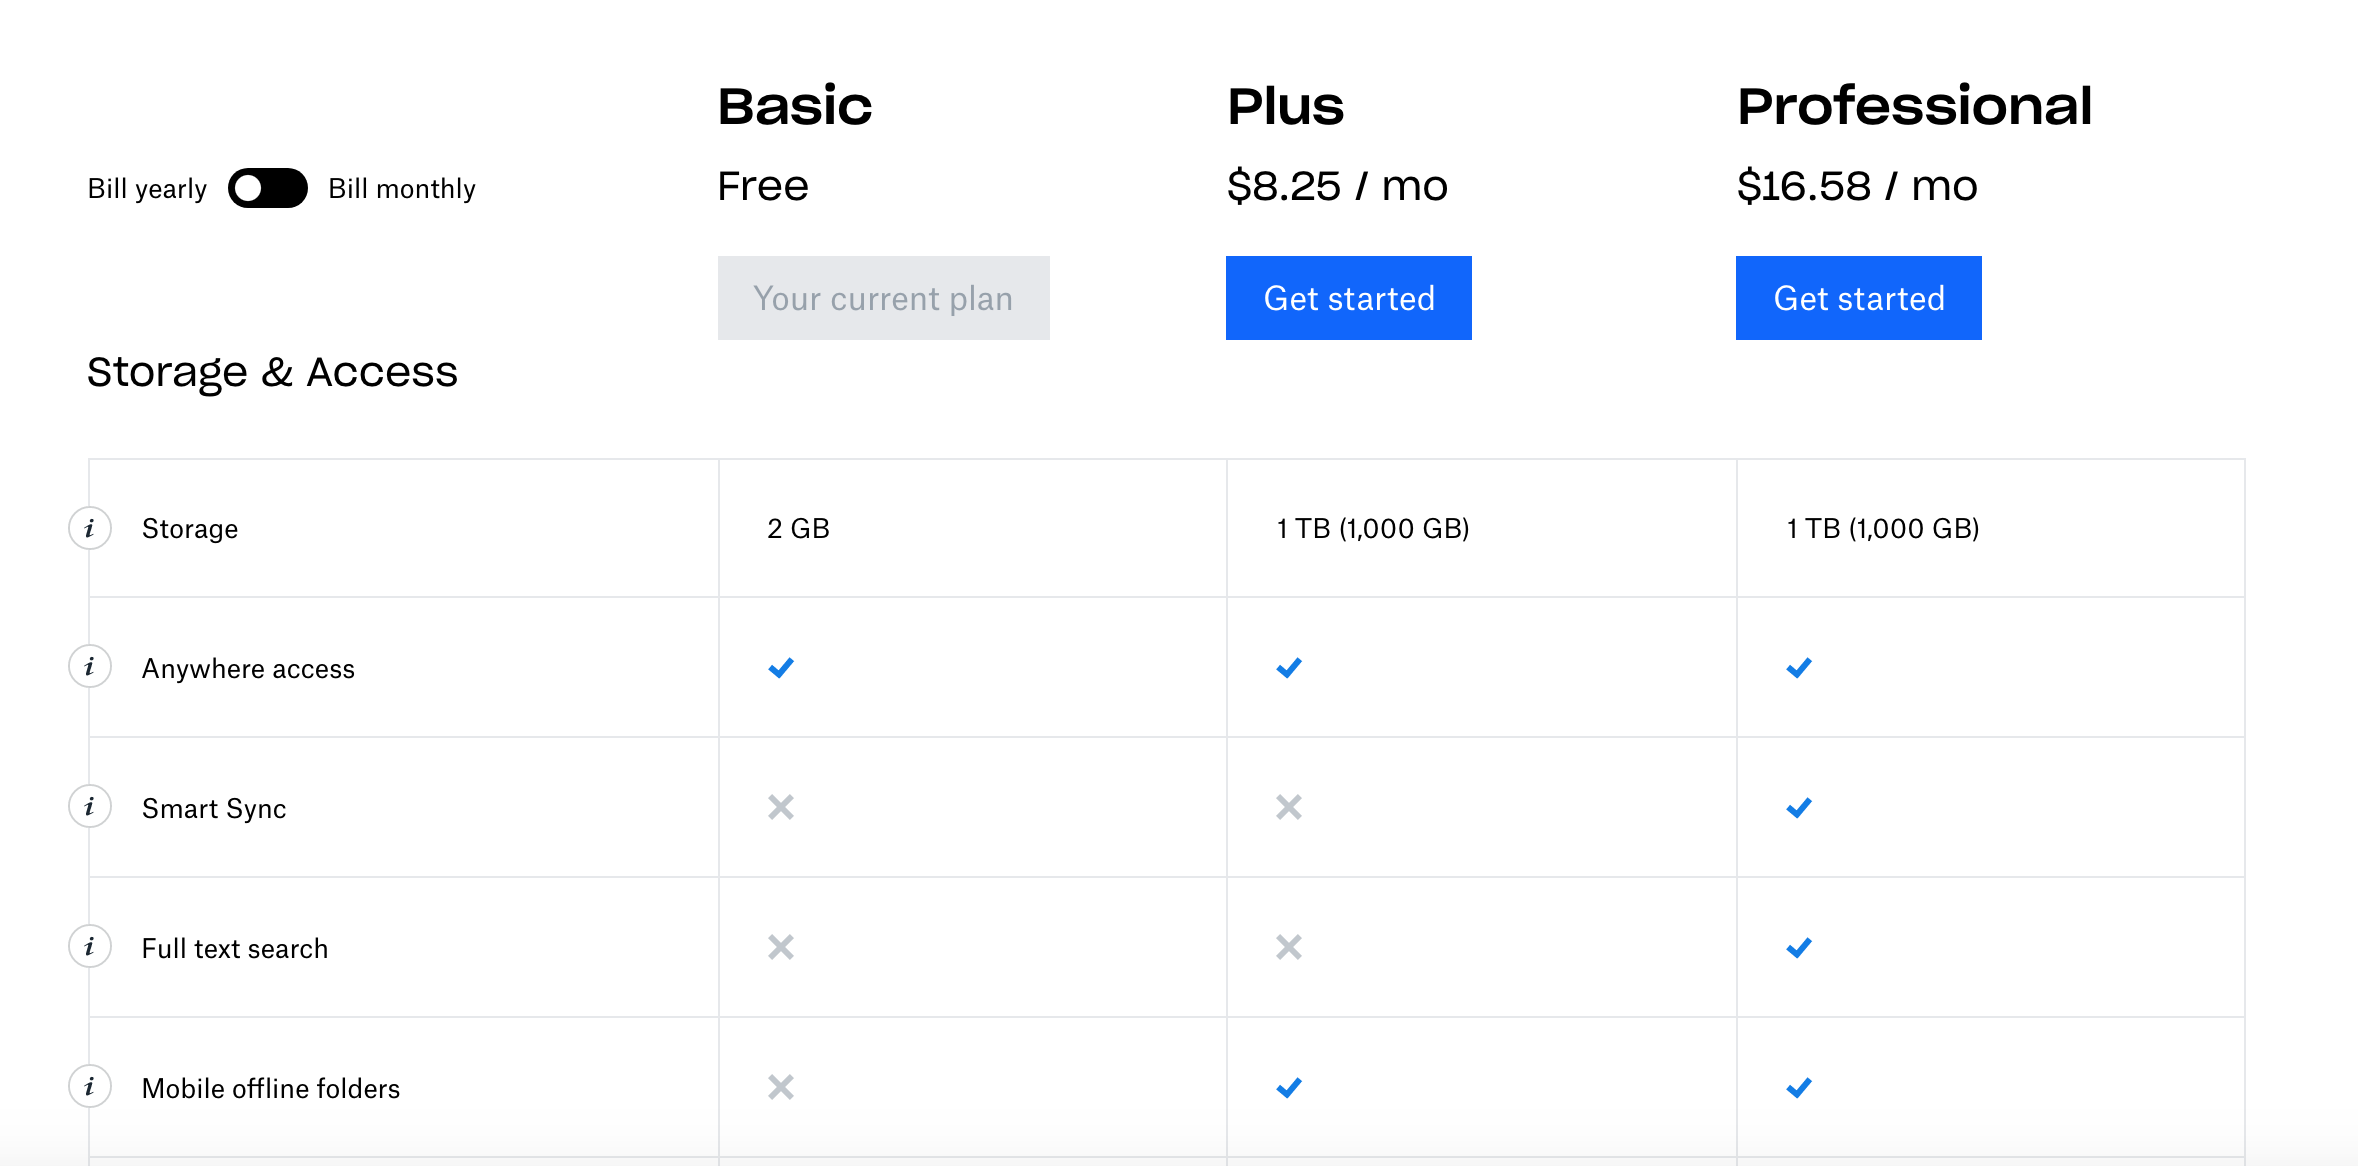 A screenshot of Dropbox's pricing page showing upsell opportunities